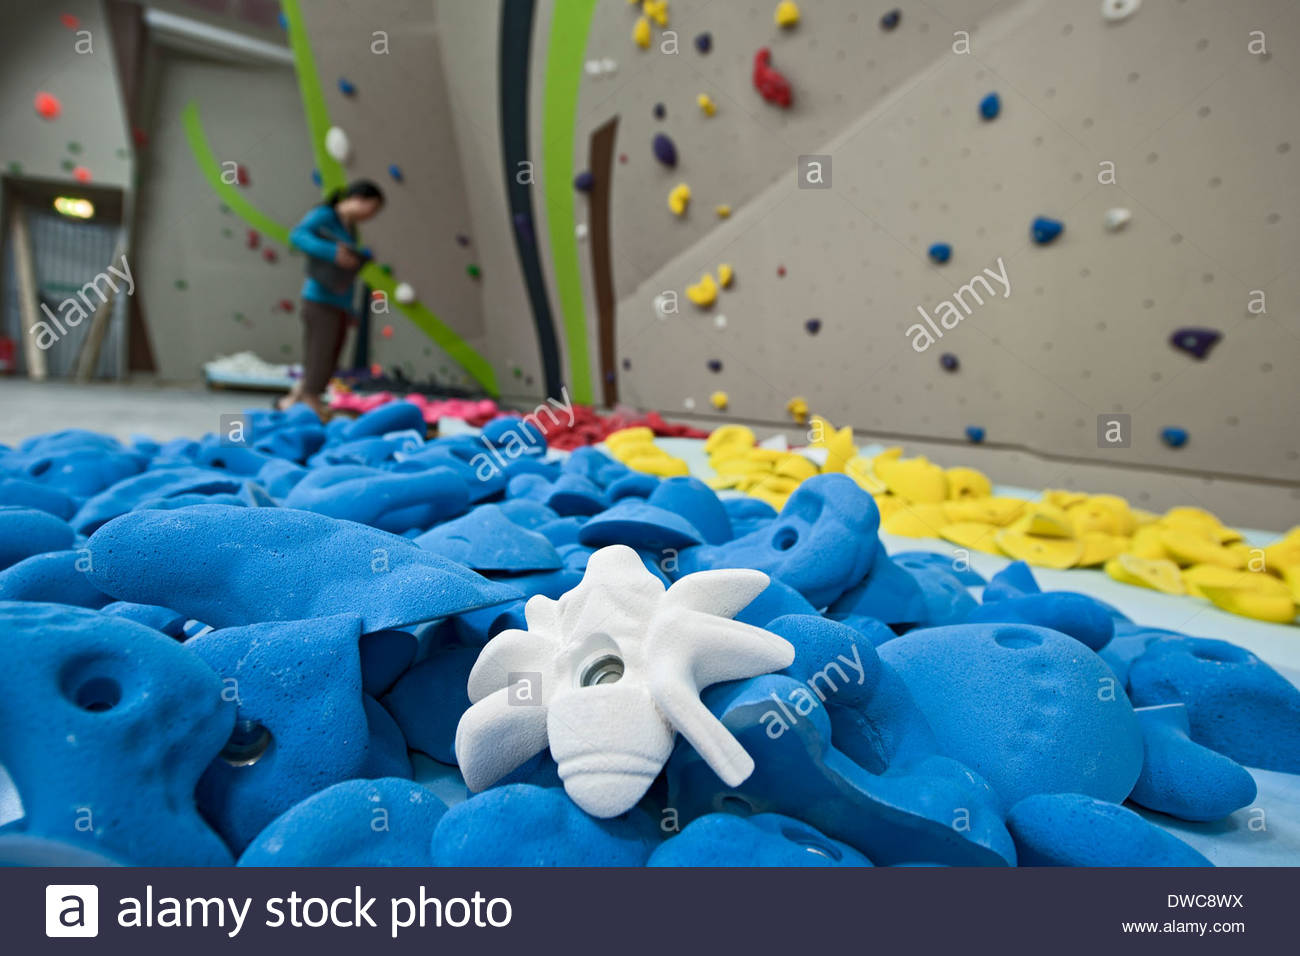 Climbing holds and woman preparing to climb on climbing wall - Stock Image